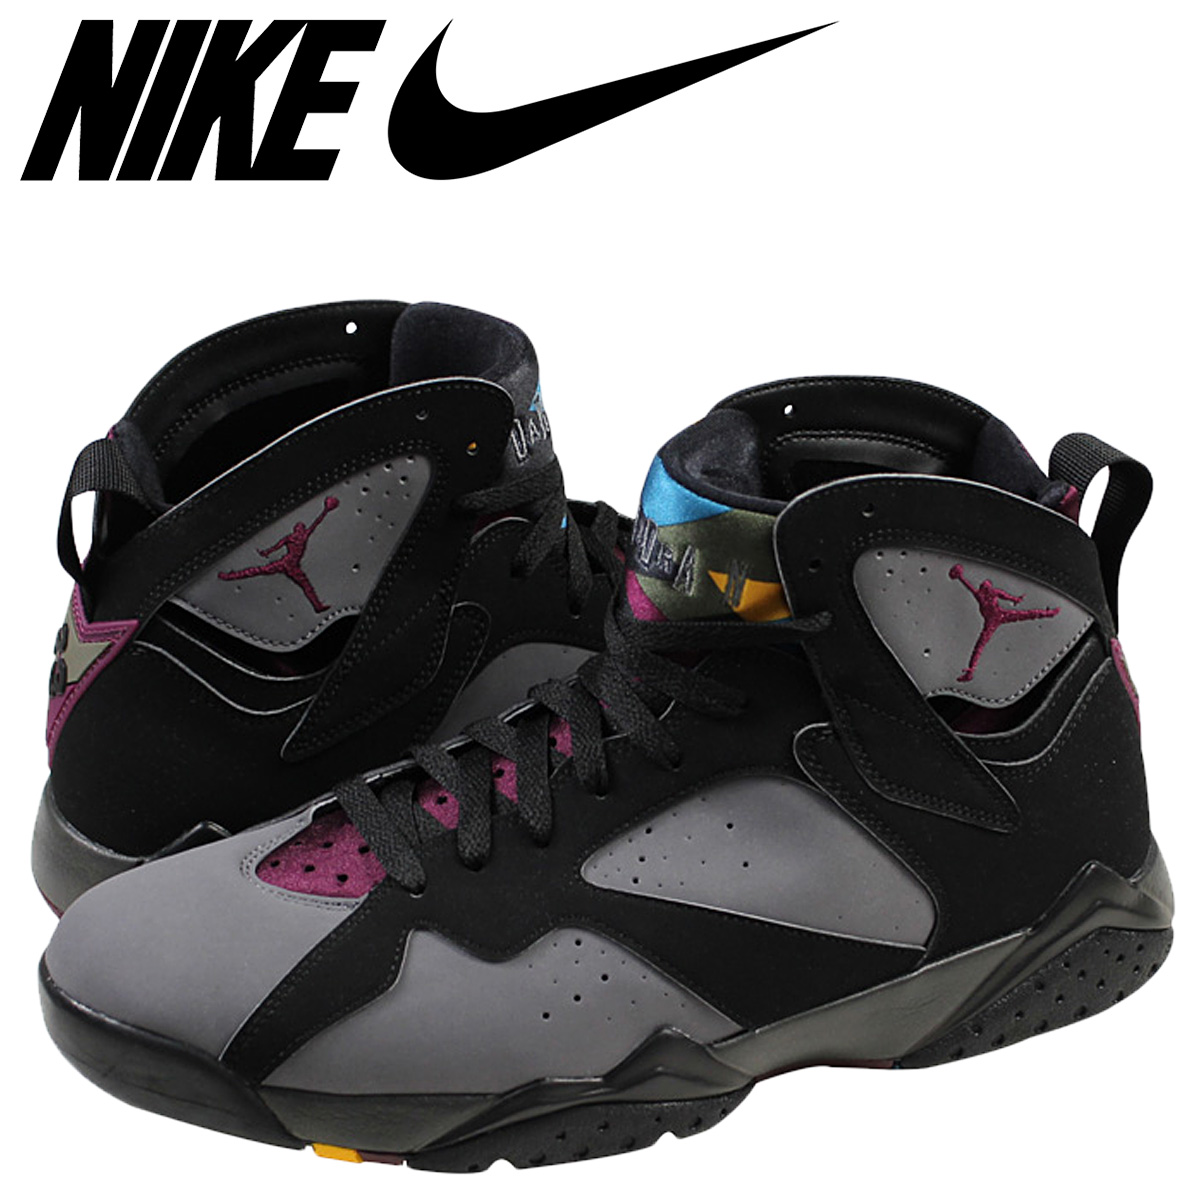 Nike NIKE Air Jordan sneakers AIR JORDAN 7 RETRO BORDEAUX Air Jordan 7 retro Bordeaux 304775 034 black mens